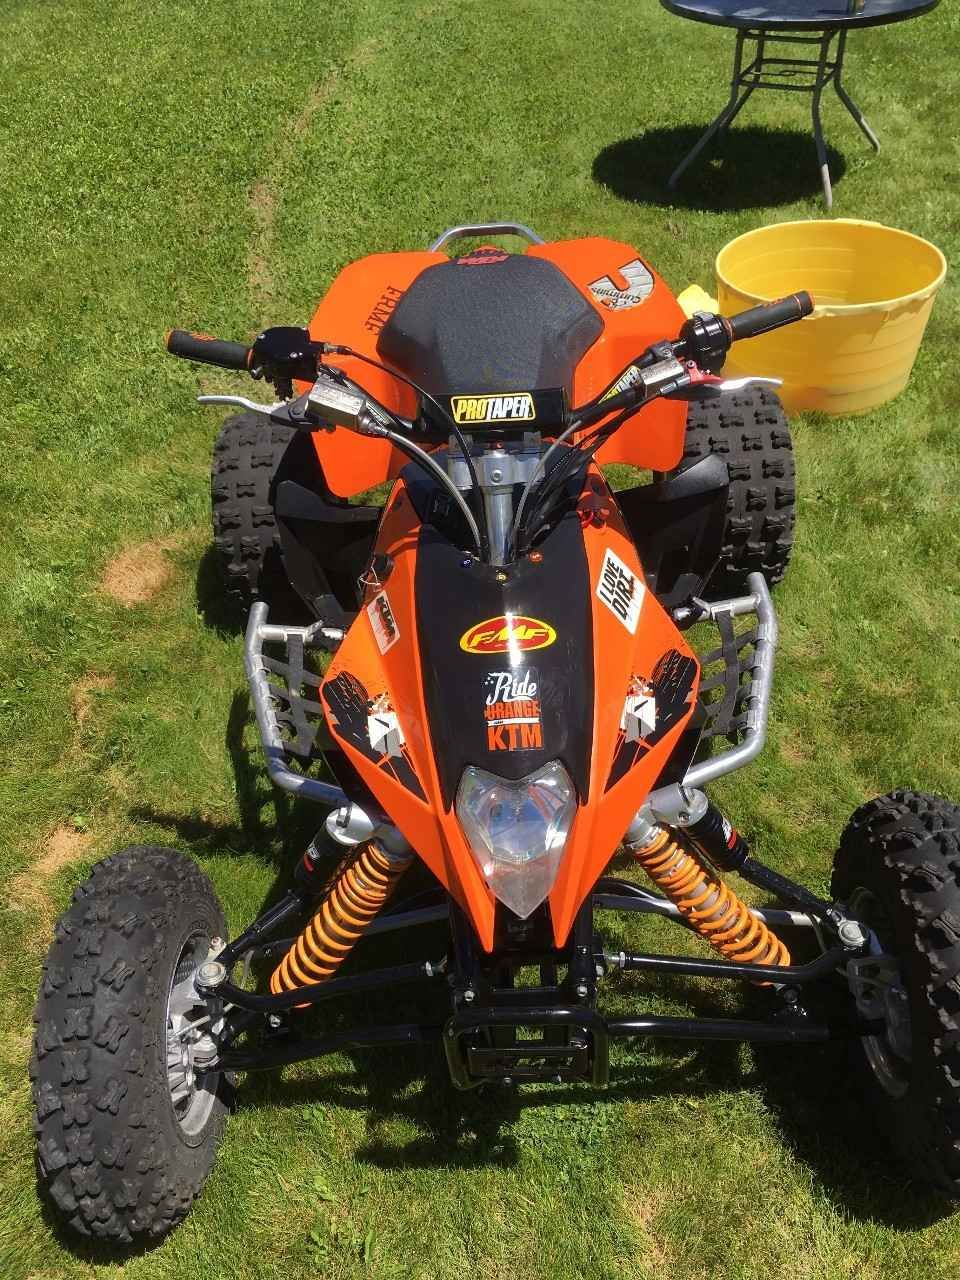 Used 2009 Ktm 505 Sx Atvs For Sale In Utah Ktm 505 Sx 7800 00 Or Best Offer Clean One Owner I Haven T Rode It For Almost 3 Years Other Than Ktm Atv Sport Atv